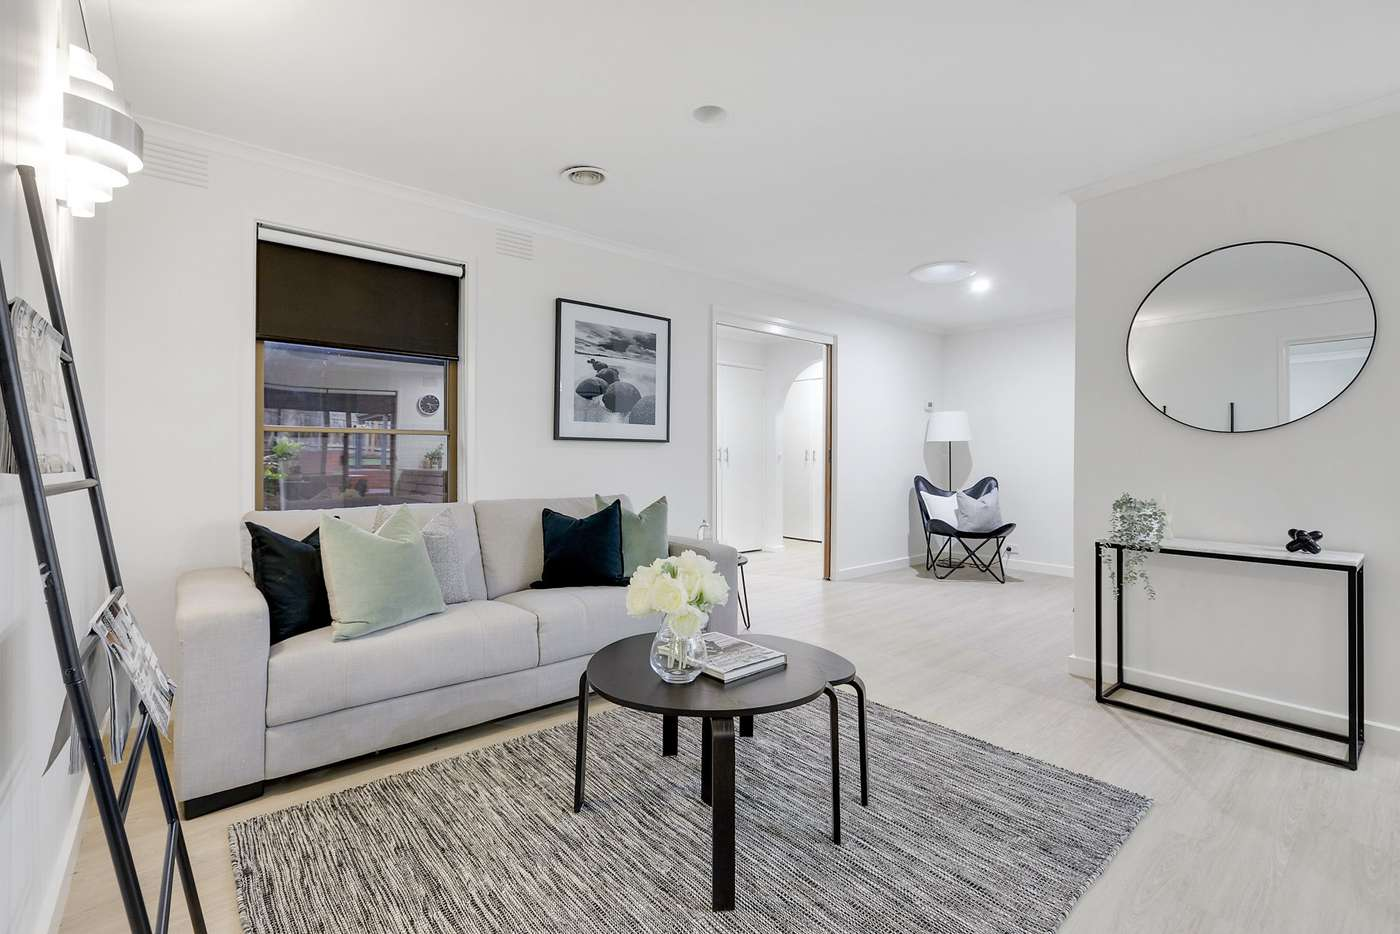 Sixth view of Homely house listing, 112 Heatherhill Road, Frankston VIC 3199